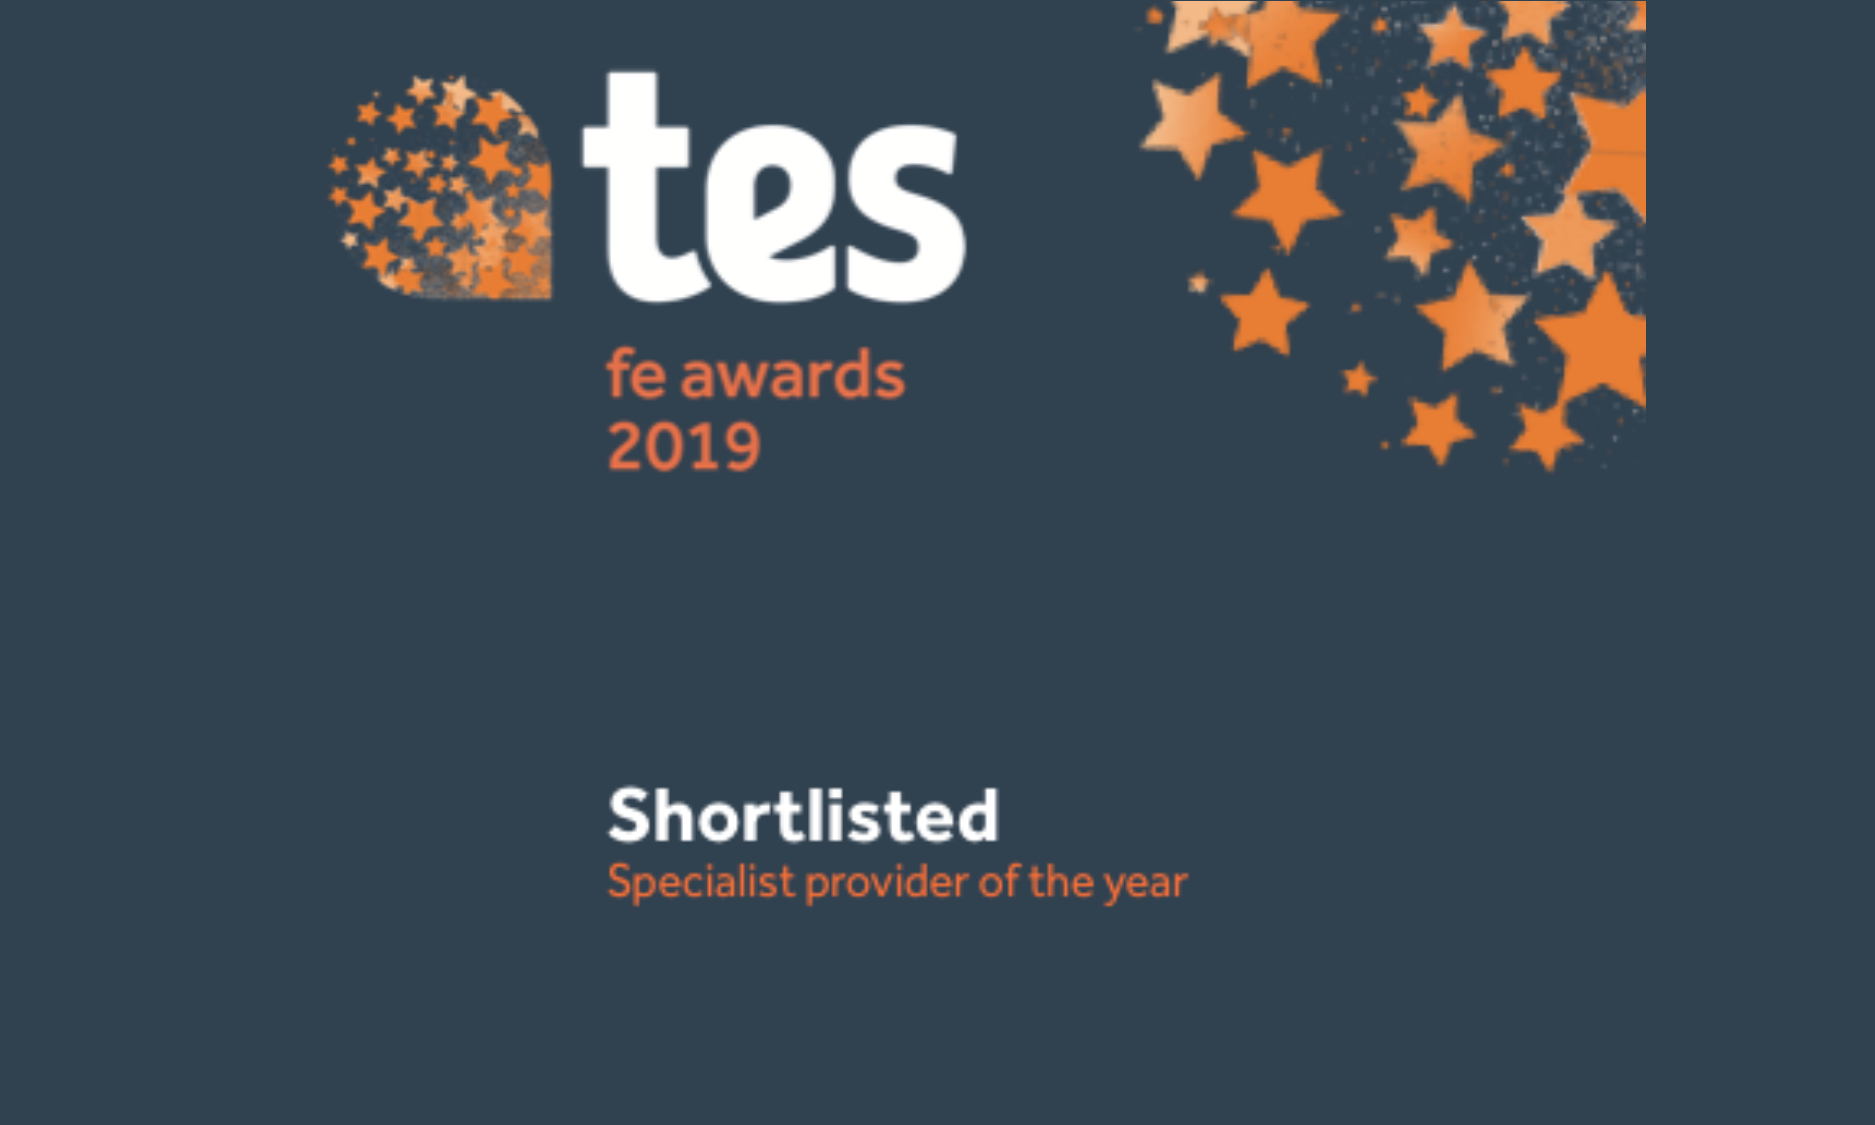 tes awards 2019 - Specialist Provider of the Year